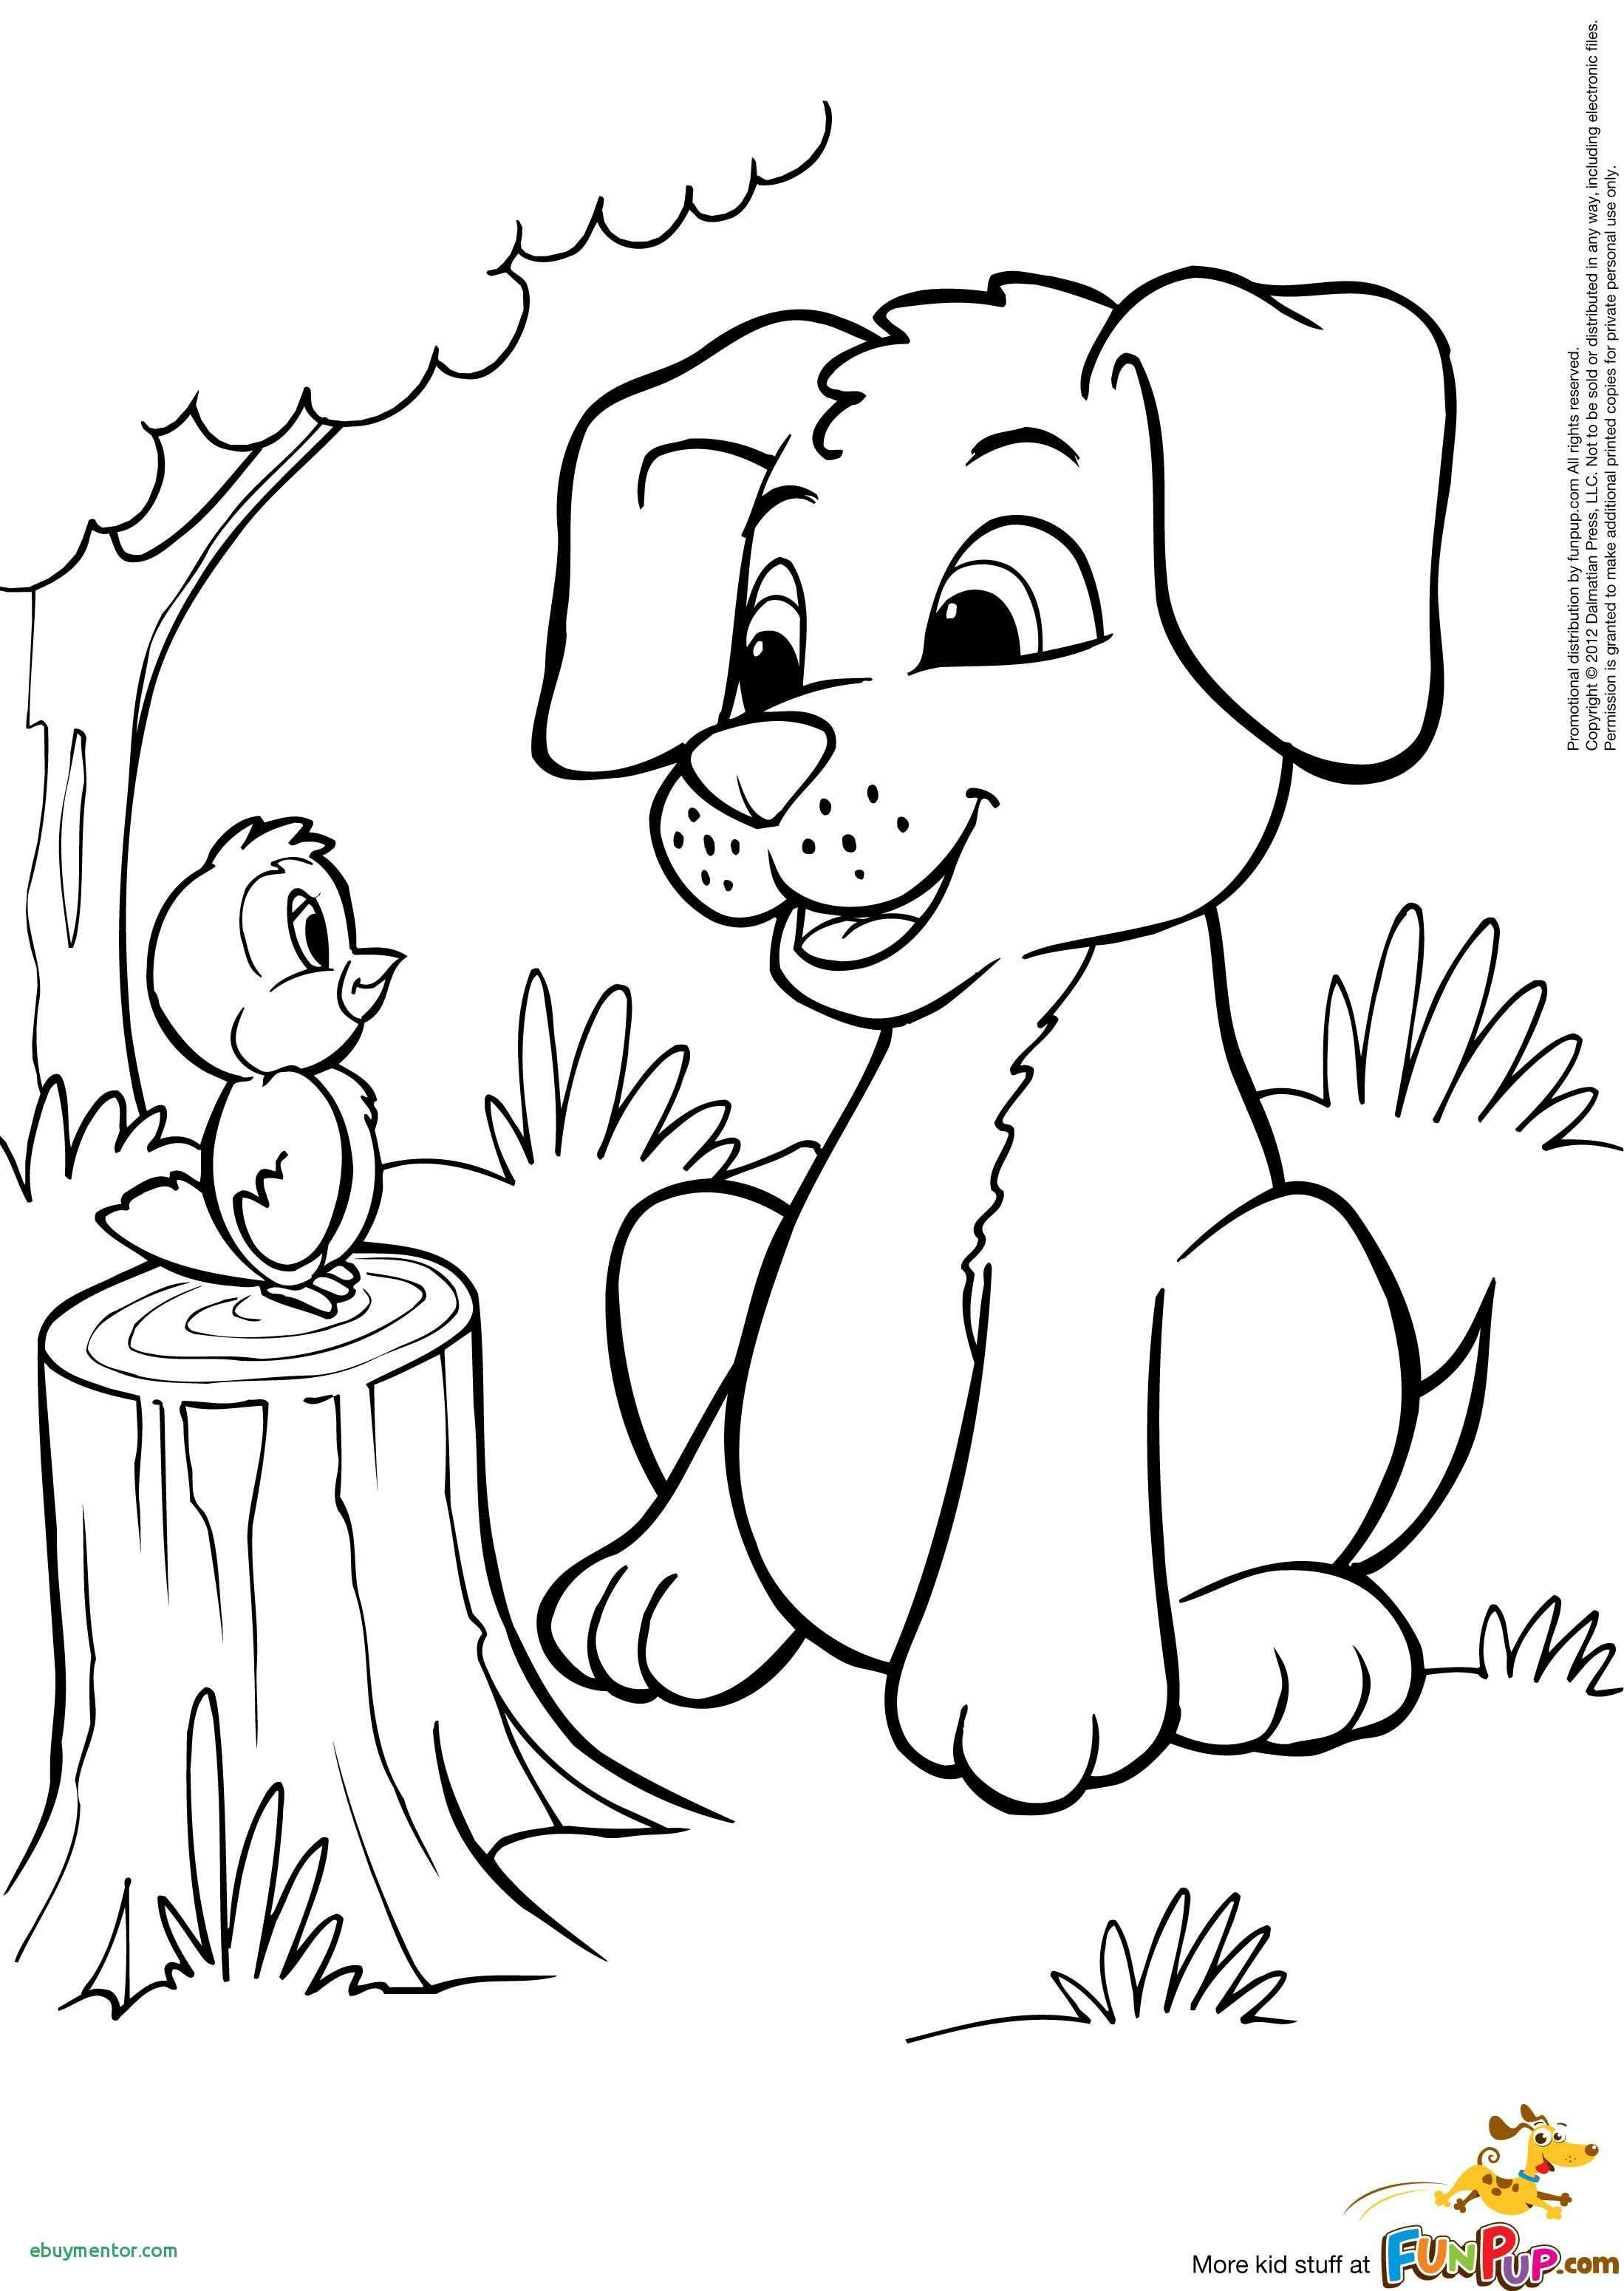 Christmas Coloring Pages Puppy With And Kitten Drawing At Getdrawings